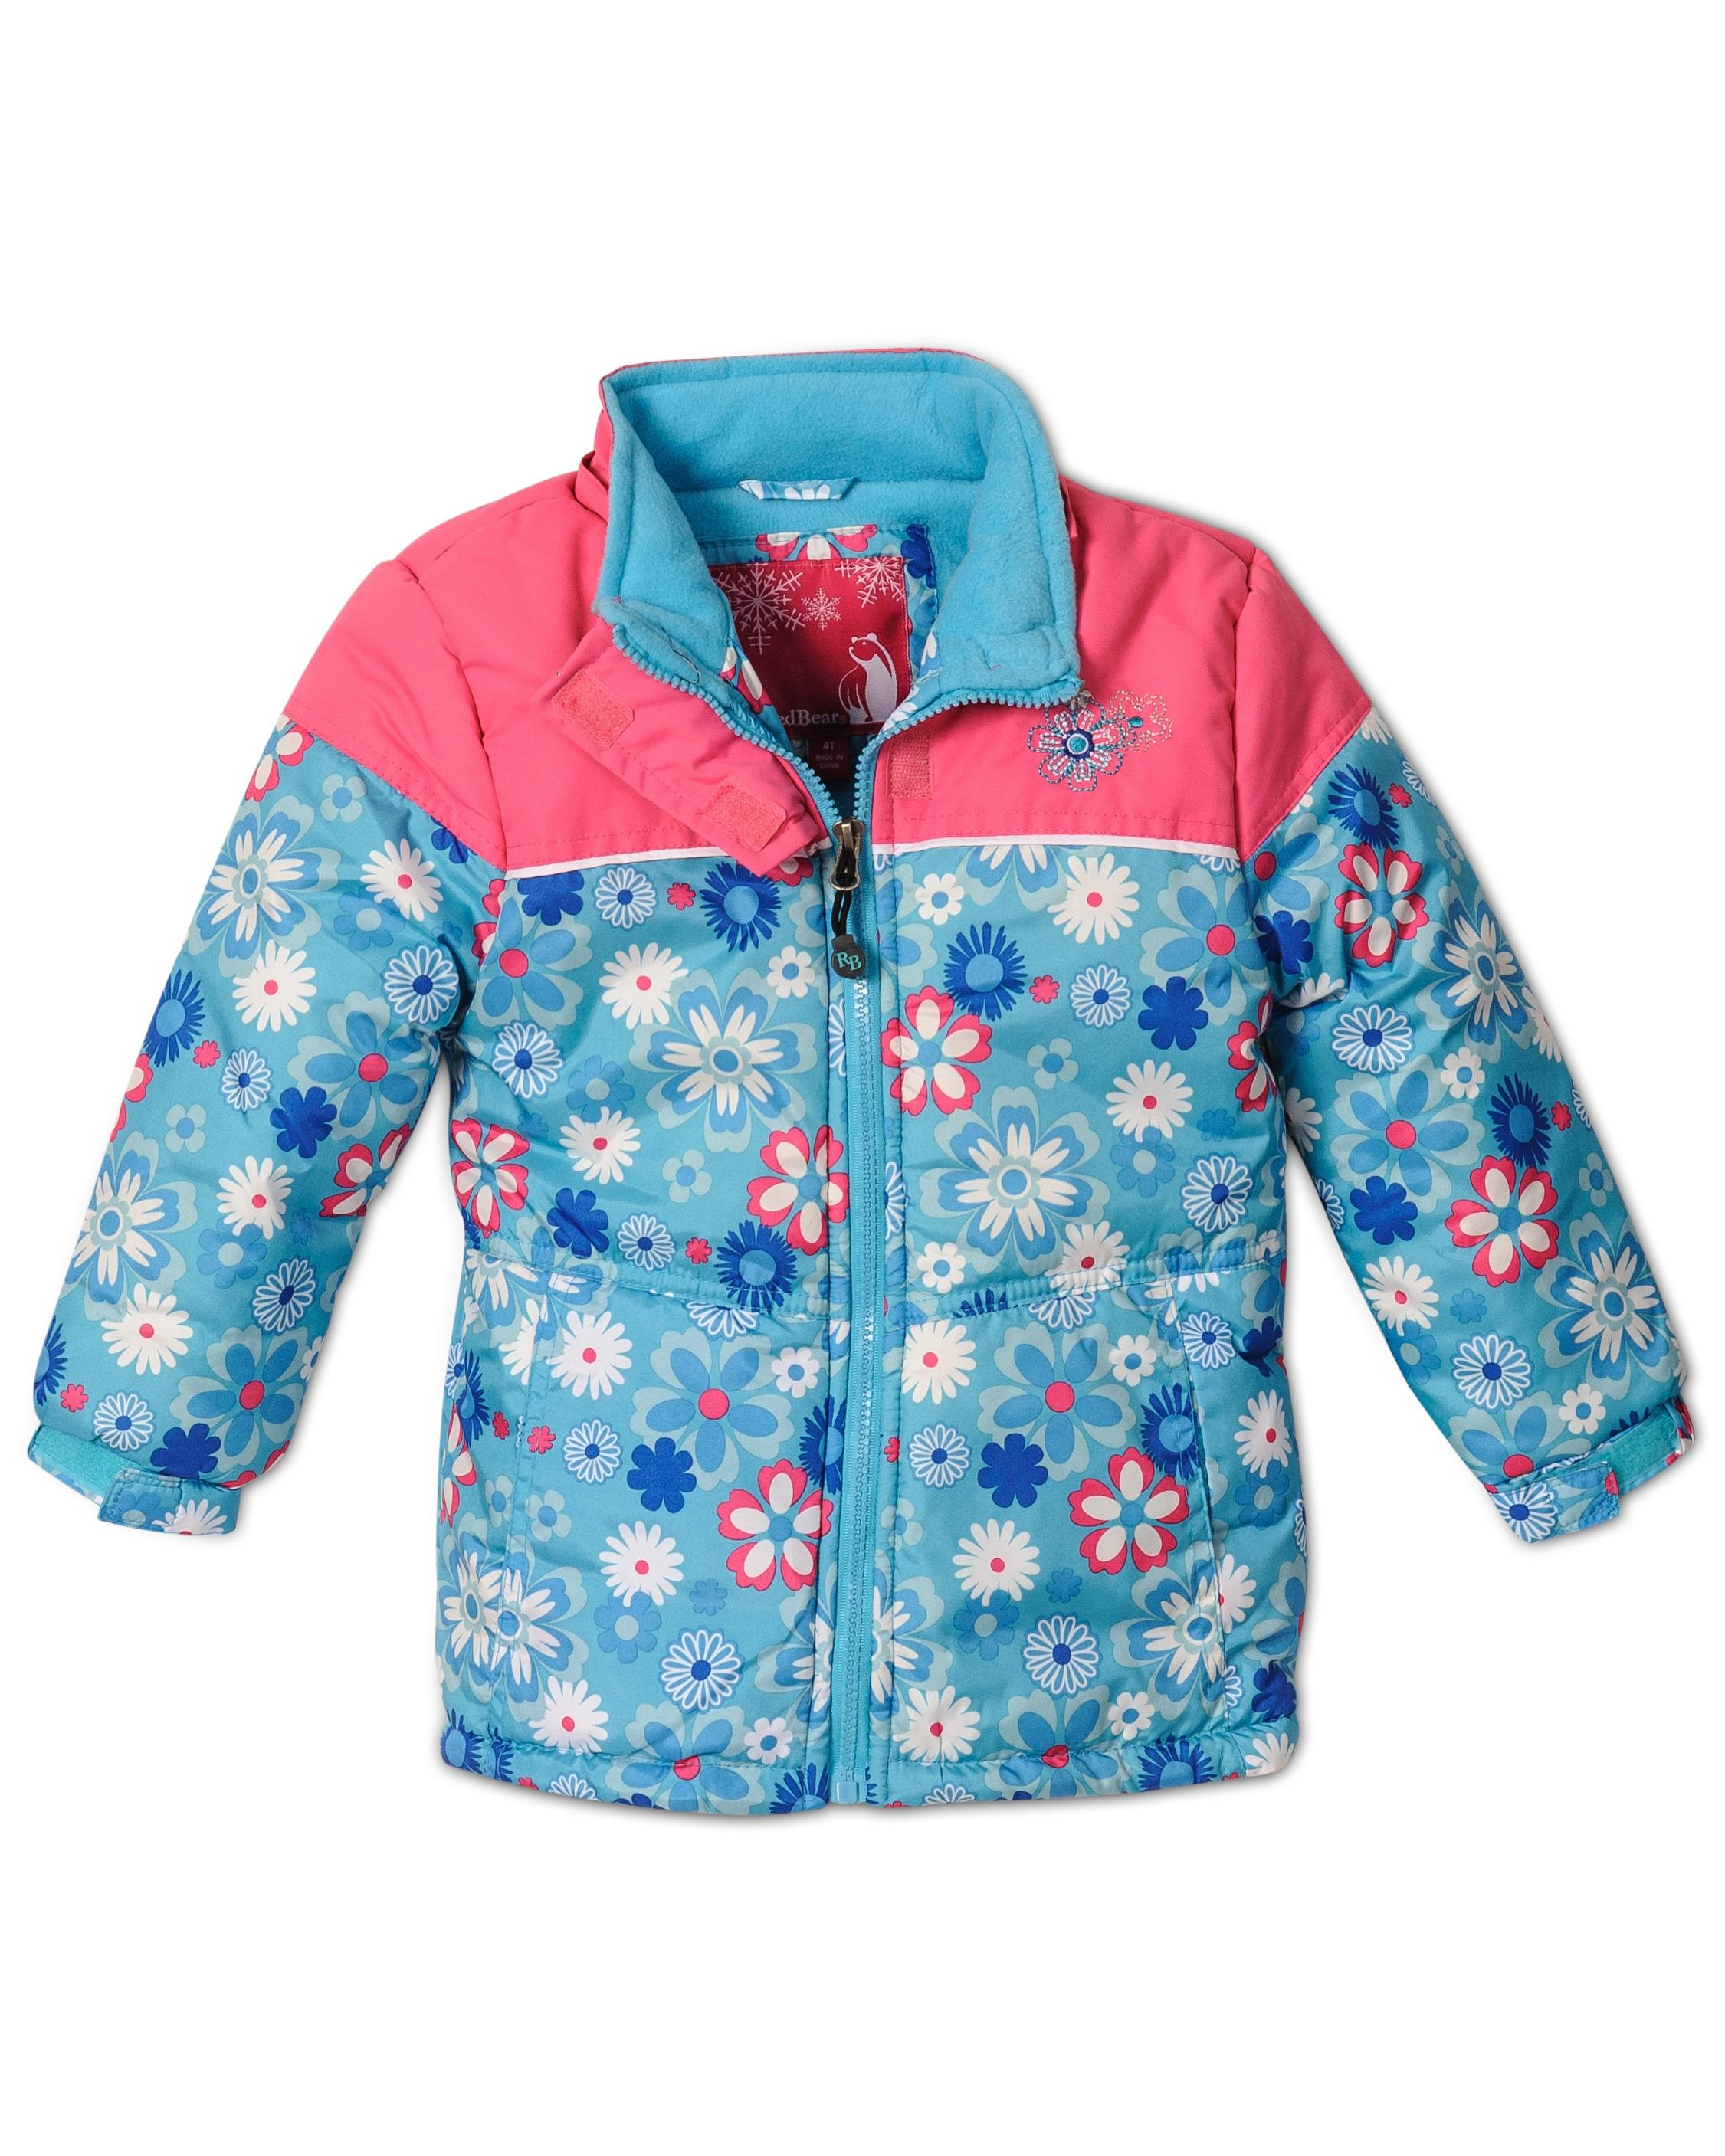 Rugged Bear Little S Fl Printed Lined Winter Hooded Jacket Coat 2t 6x Turquoise Size